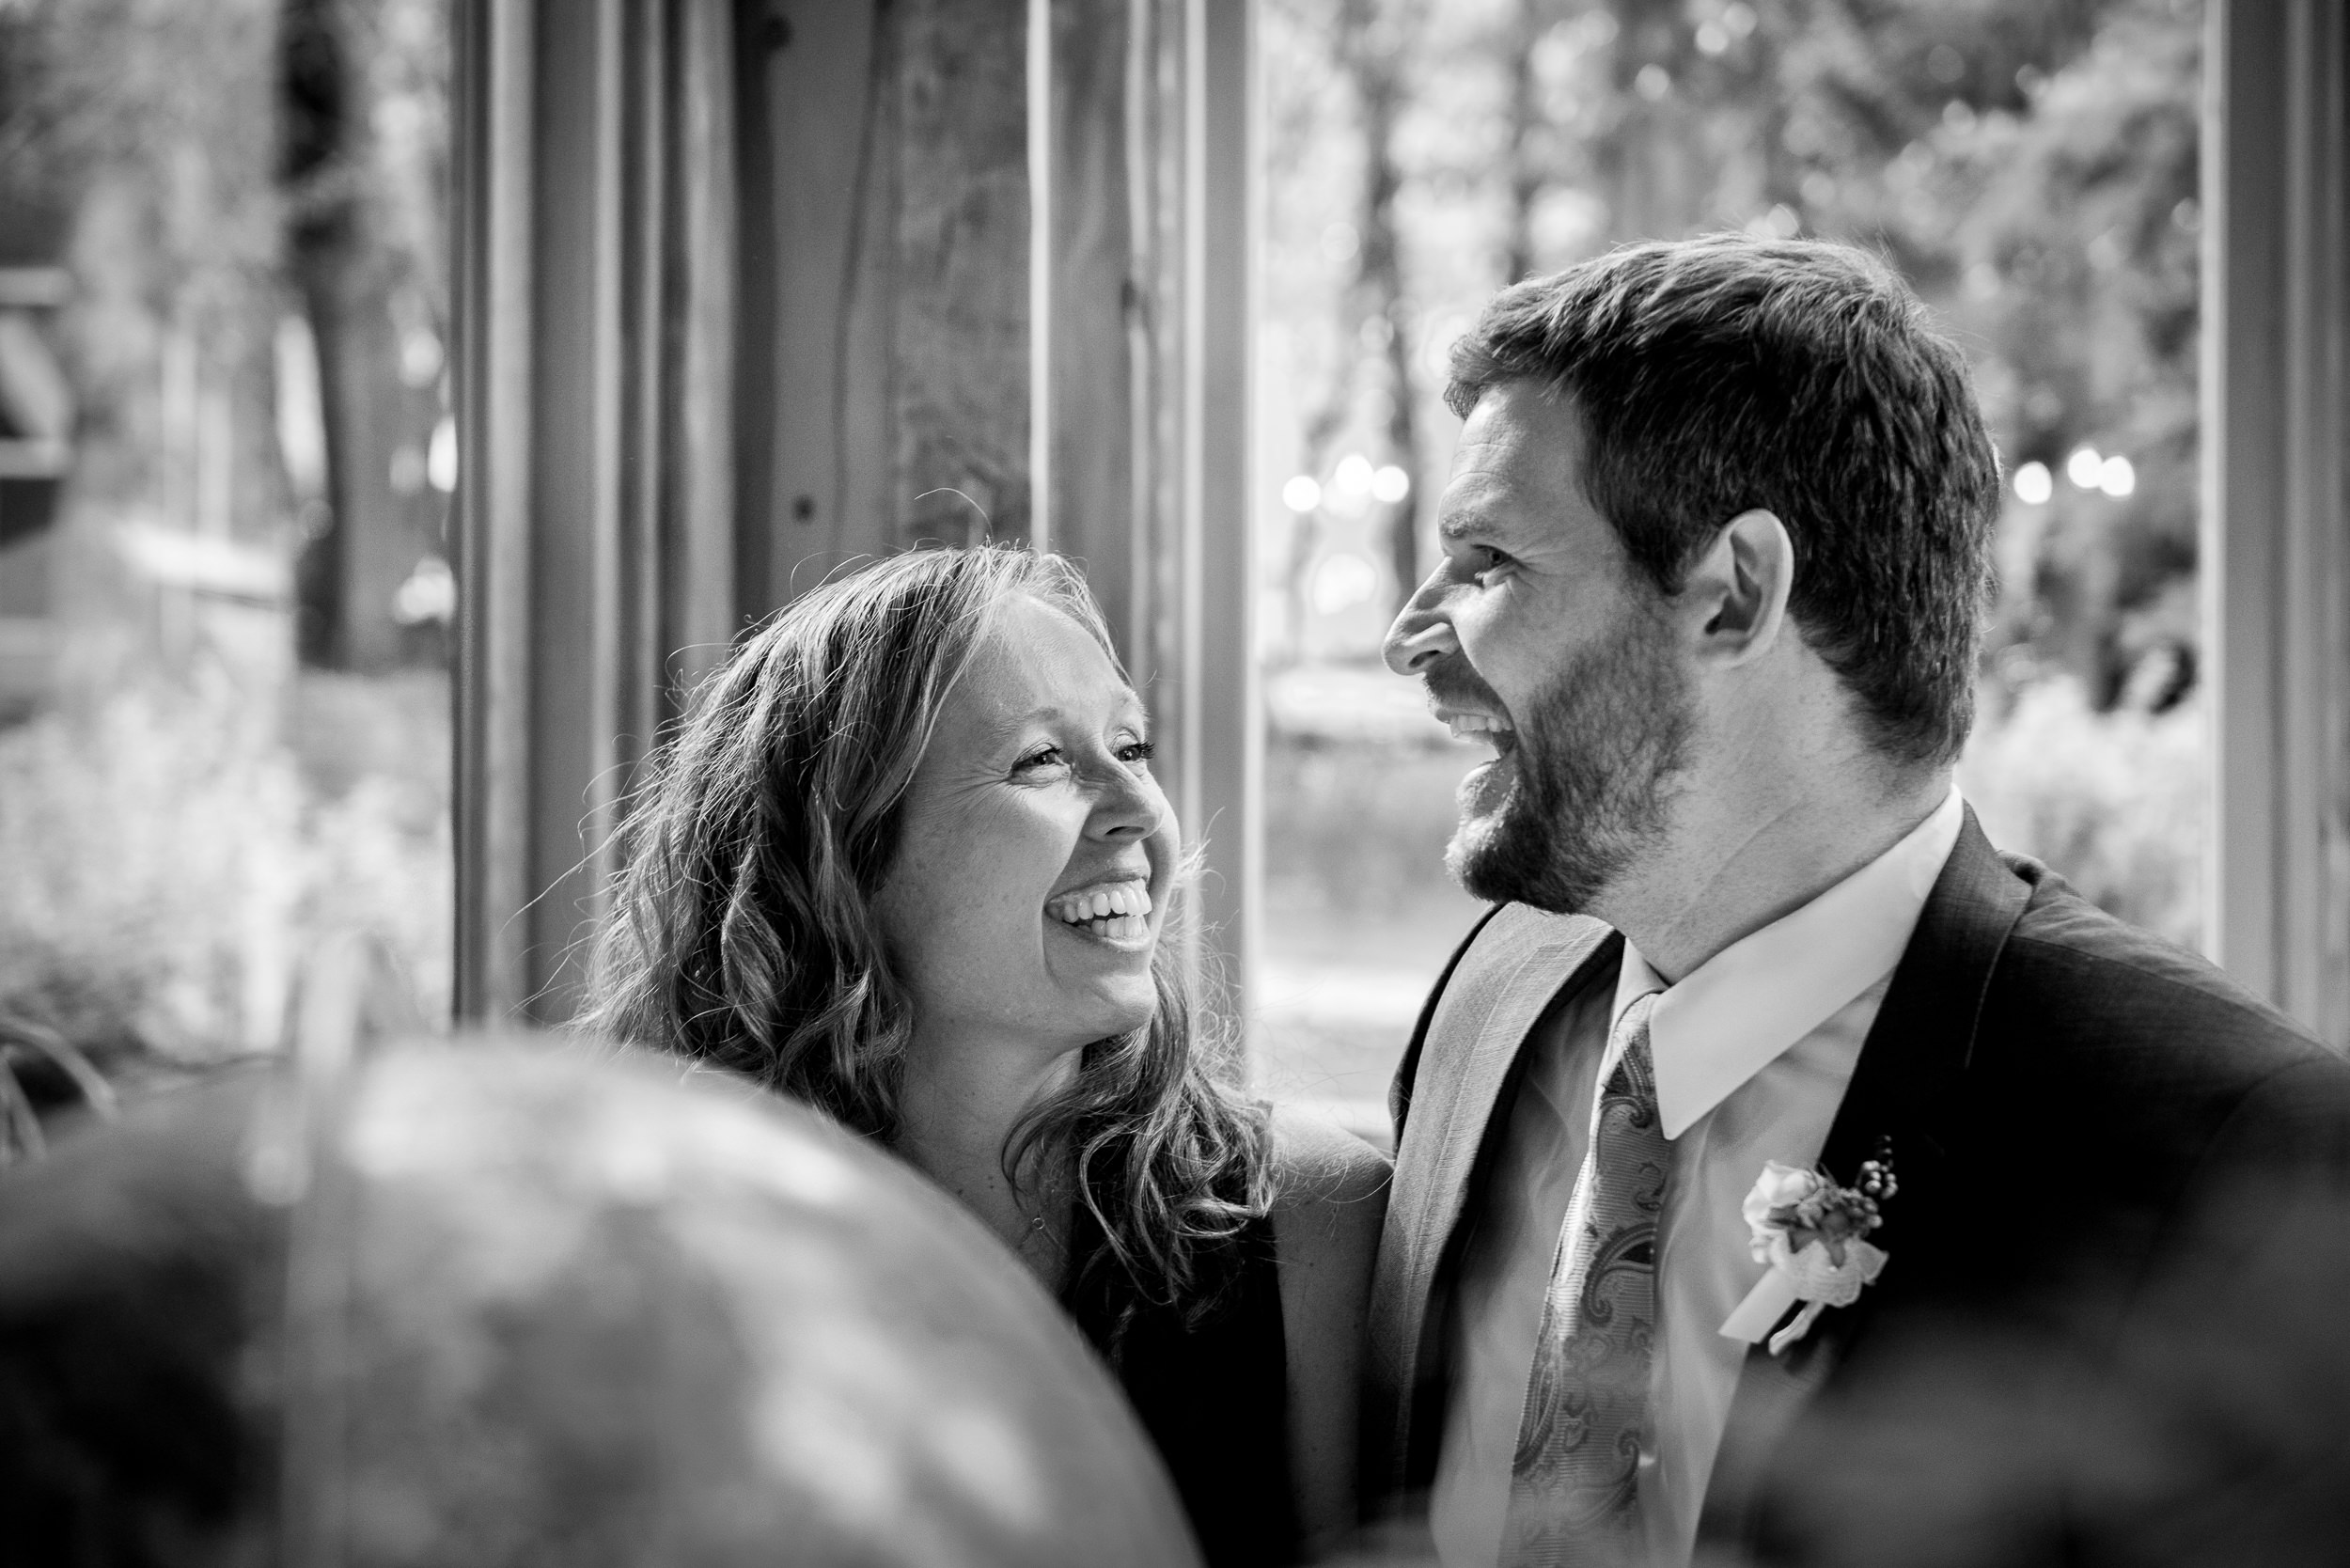 Black and White Documentary Wedding Photography in Denver, Colorado - couple laughing at reception dinner